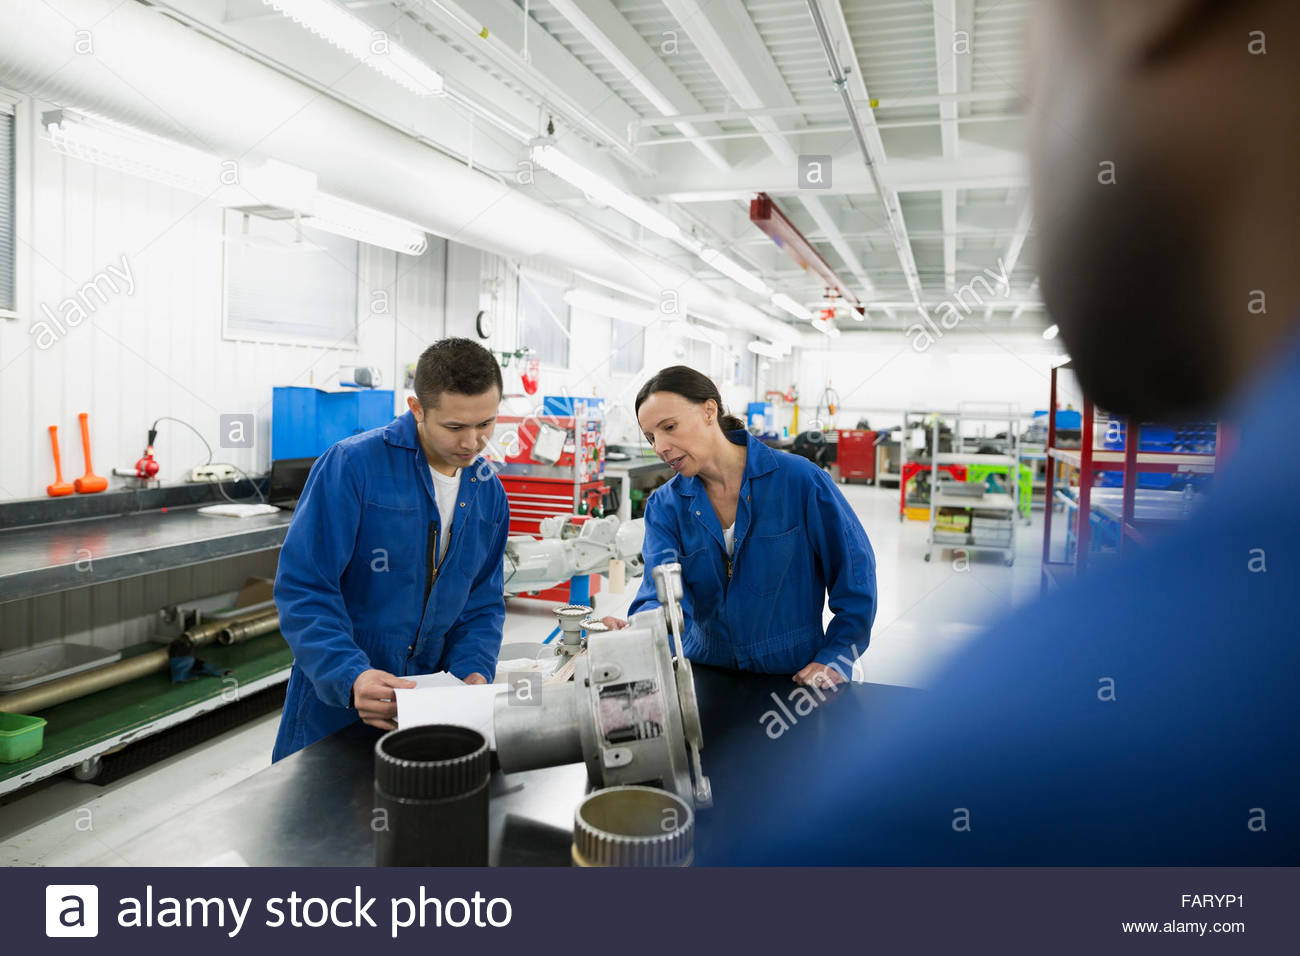 Helicopter mechanics examining parts in workshop - Stock Image